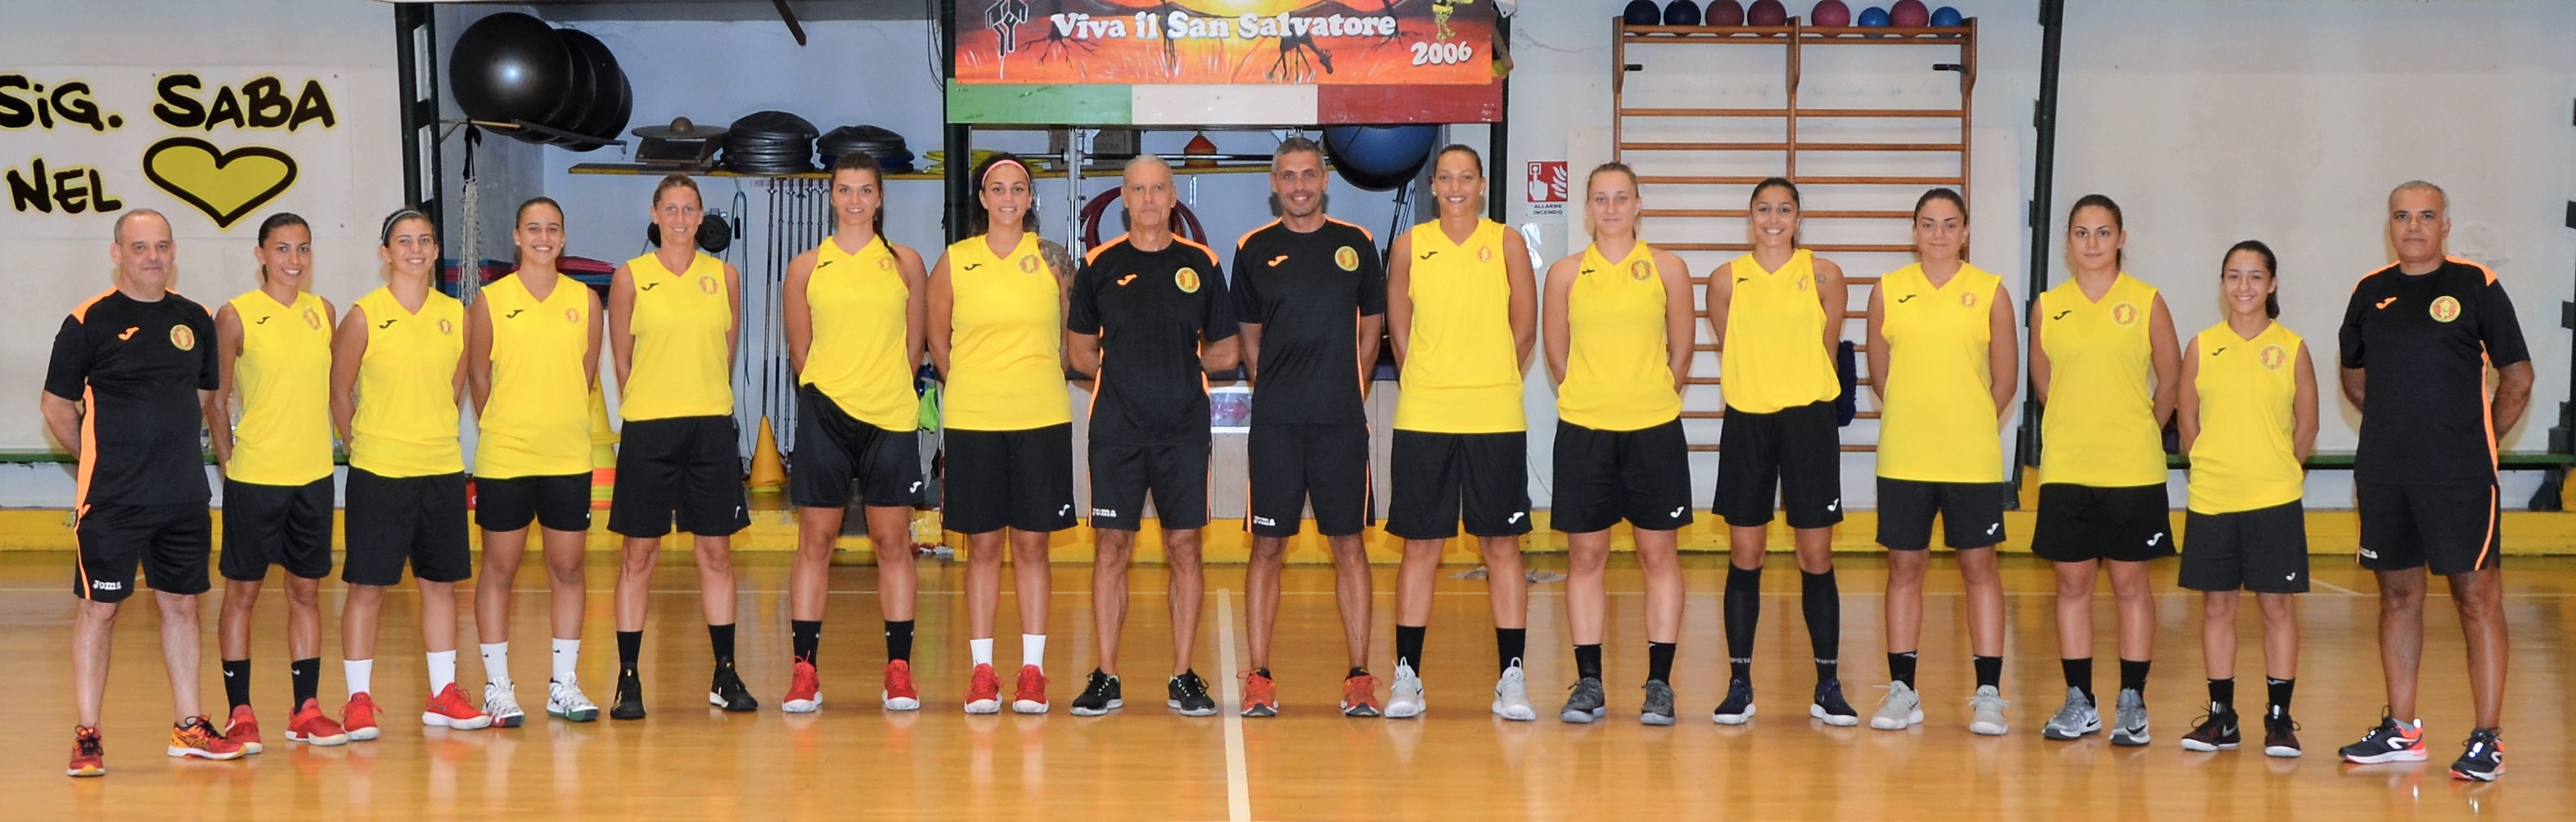 http://www.basketsansalvatore.it/wp/wp-content/uploads/2018/08/header-1-DSC_0480.jpg